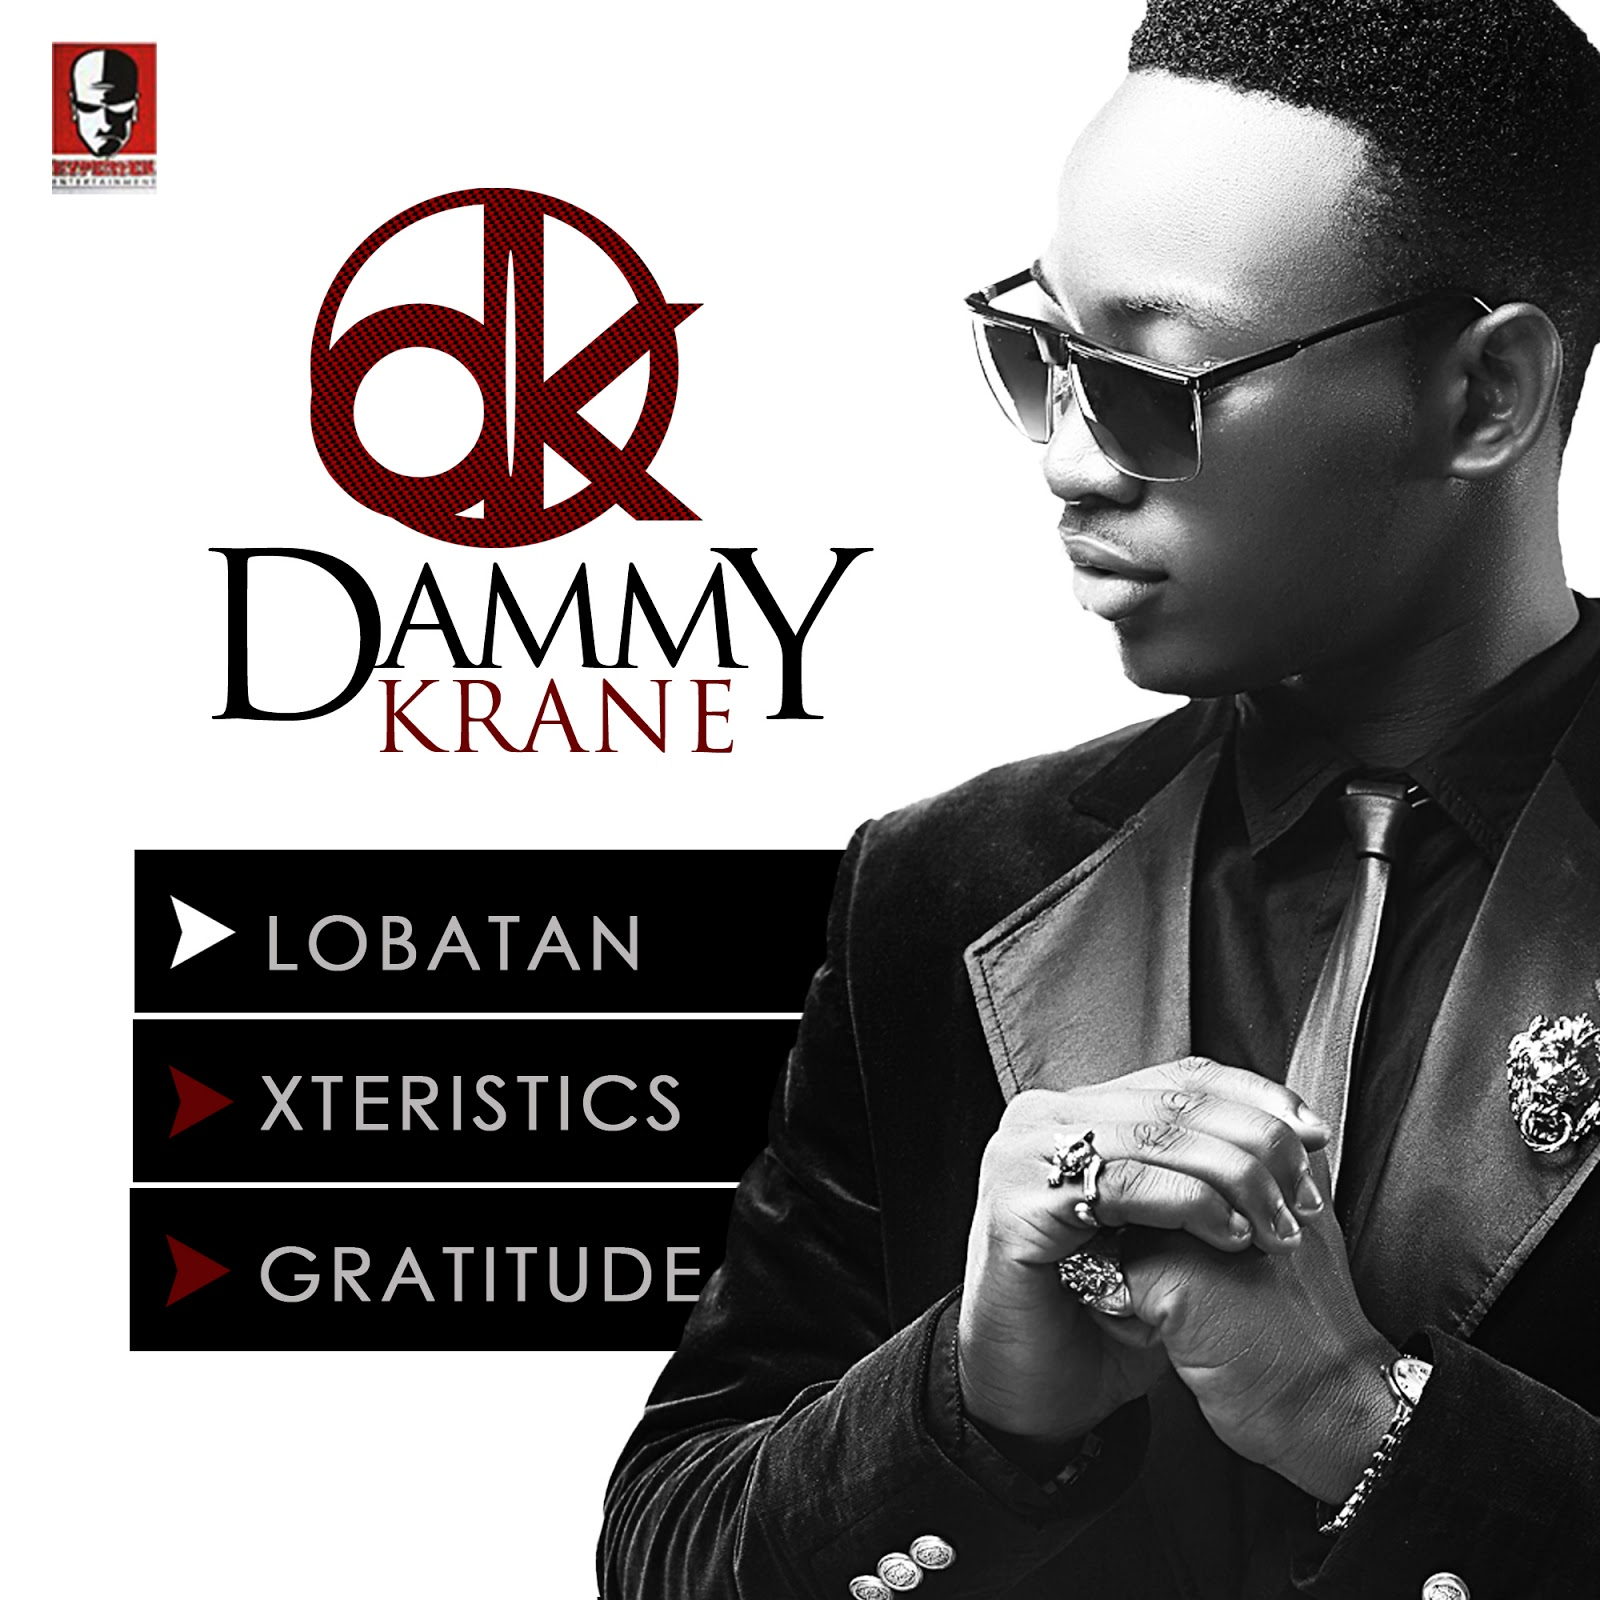 Welcome To Chikeade's Blog: Dammy Krane Releases 3 New